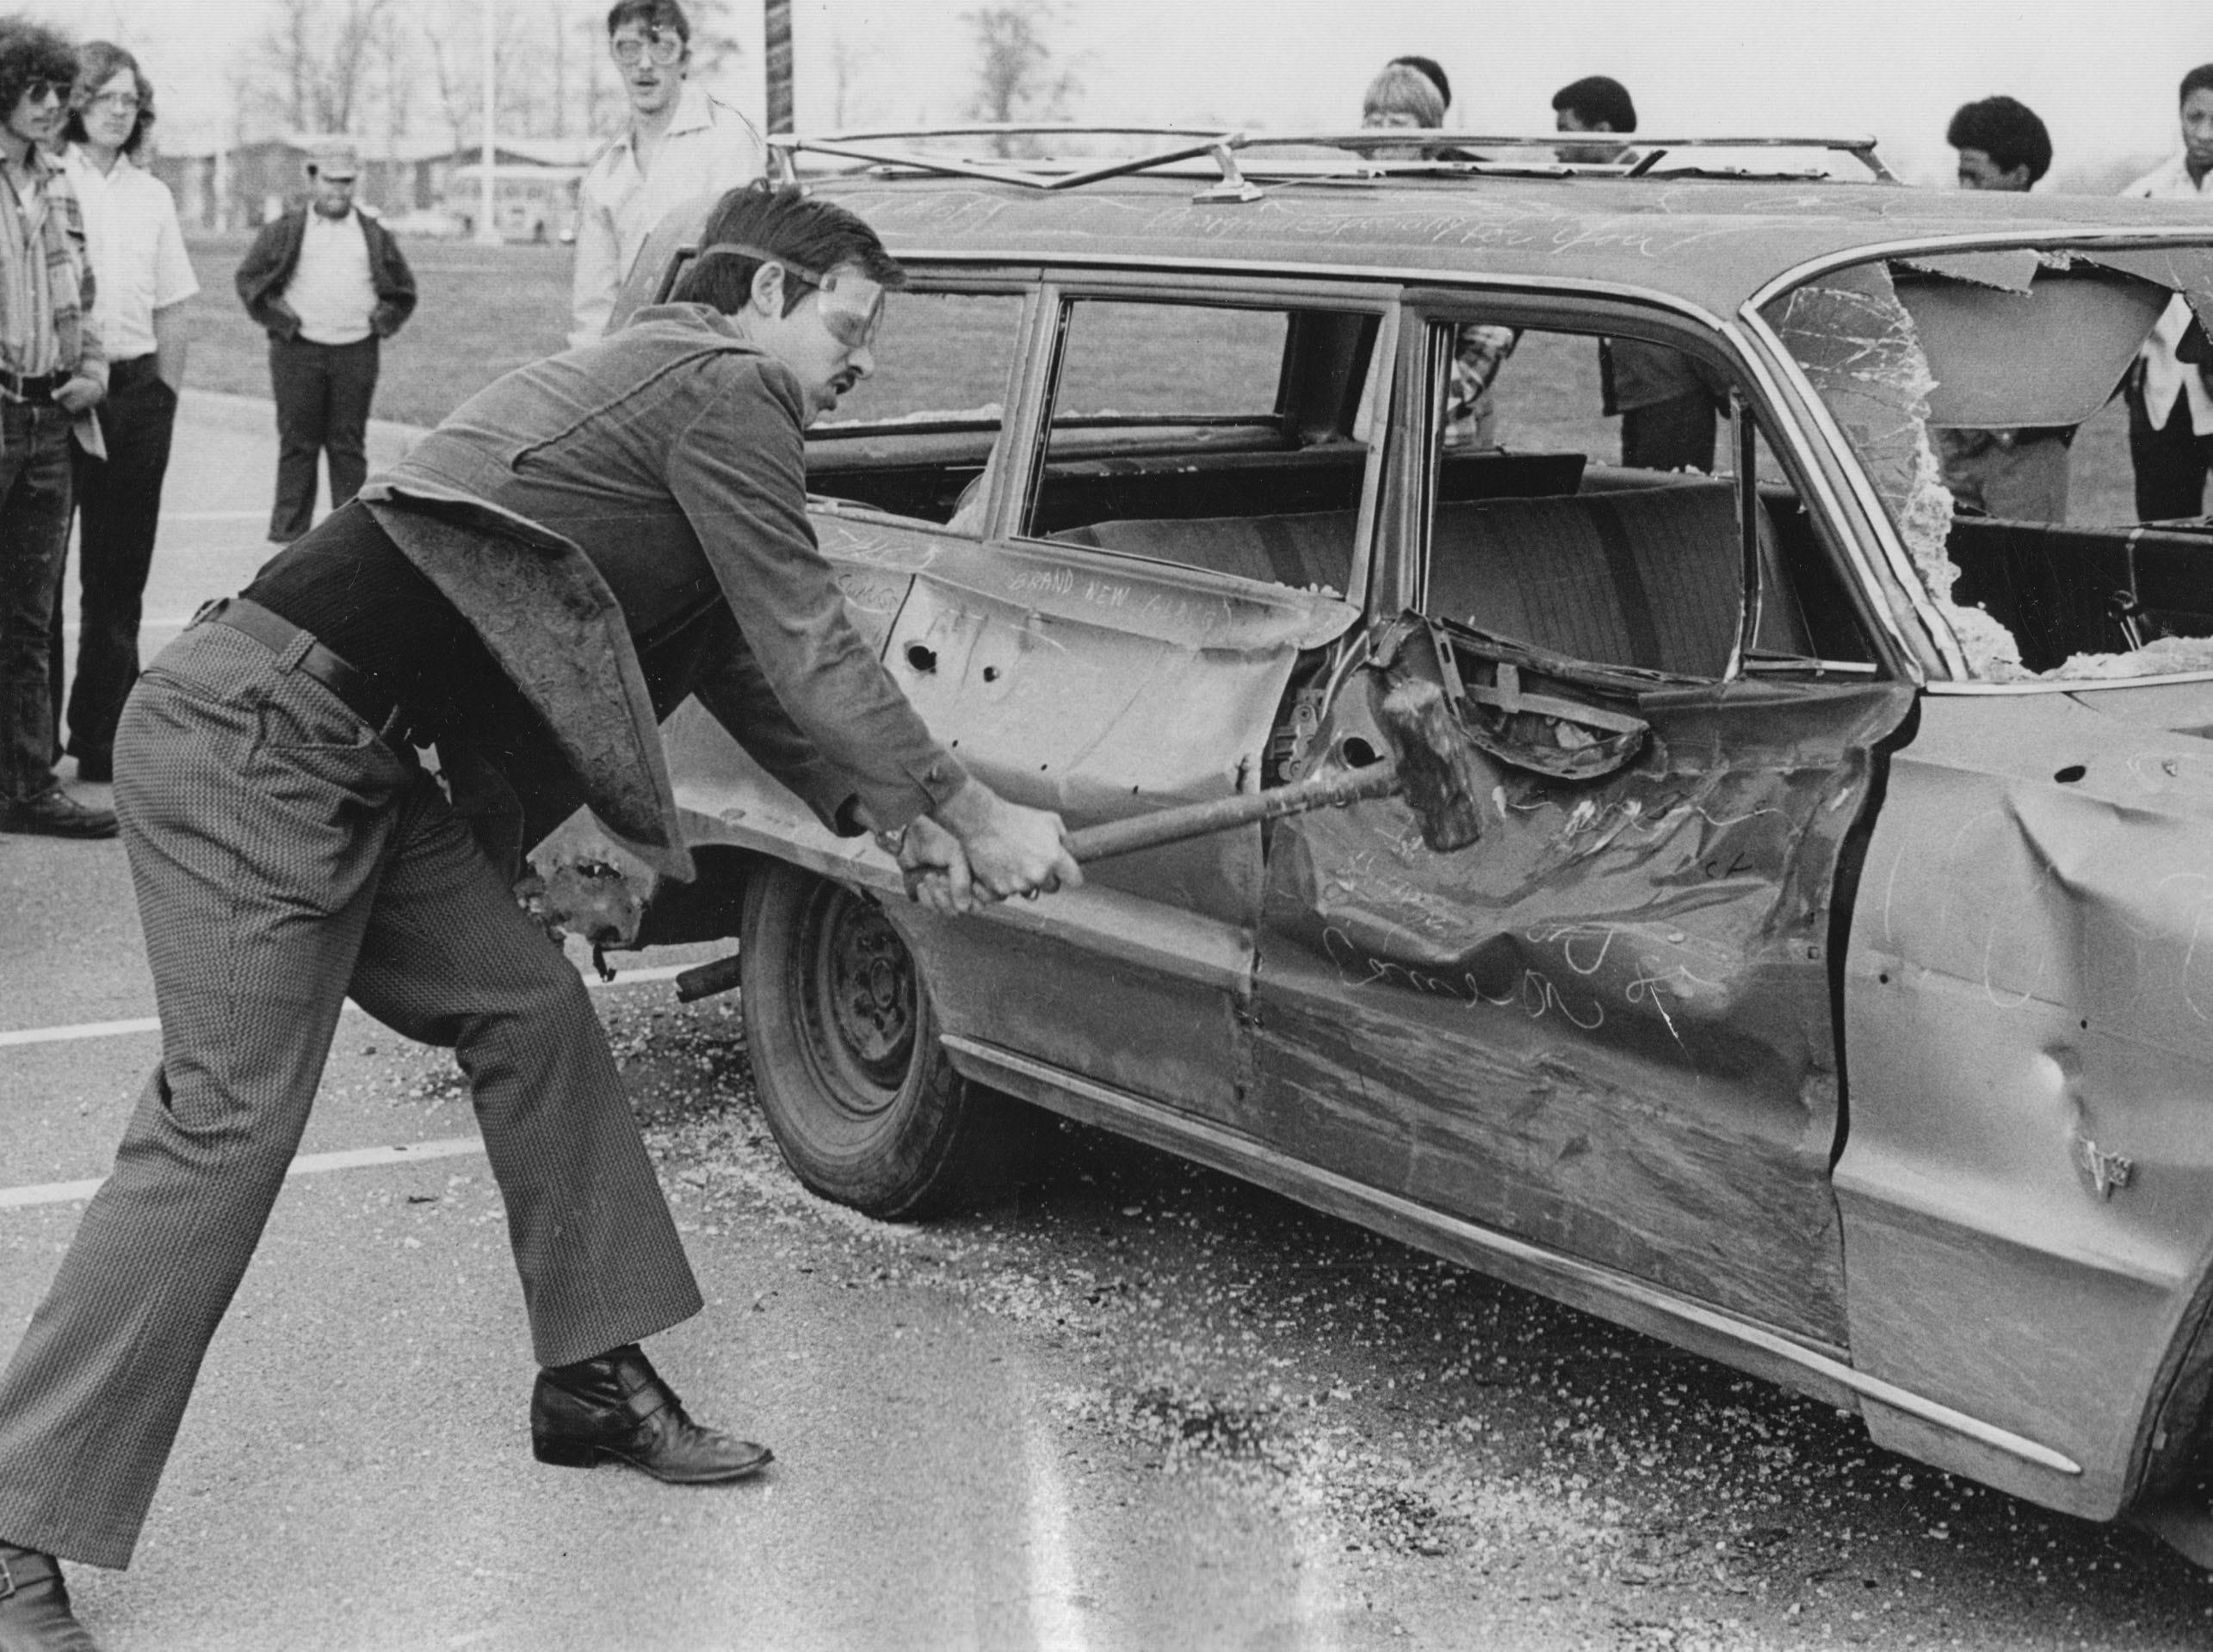 A Marshall High School student takes a swing at an old station wagon with a sledge hammer on the schools outdoor basketball court. Students demolished the car to raise money for a special activities bus for the school.